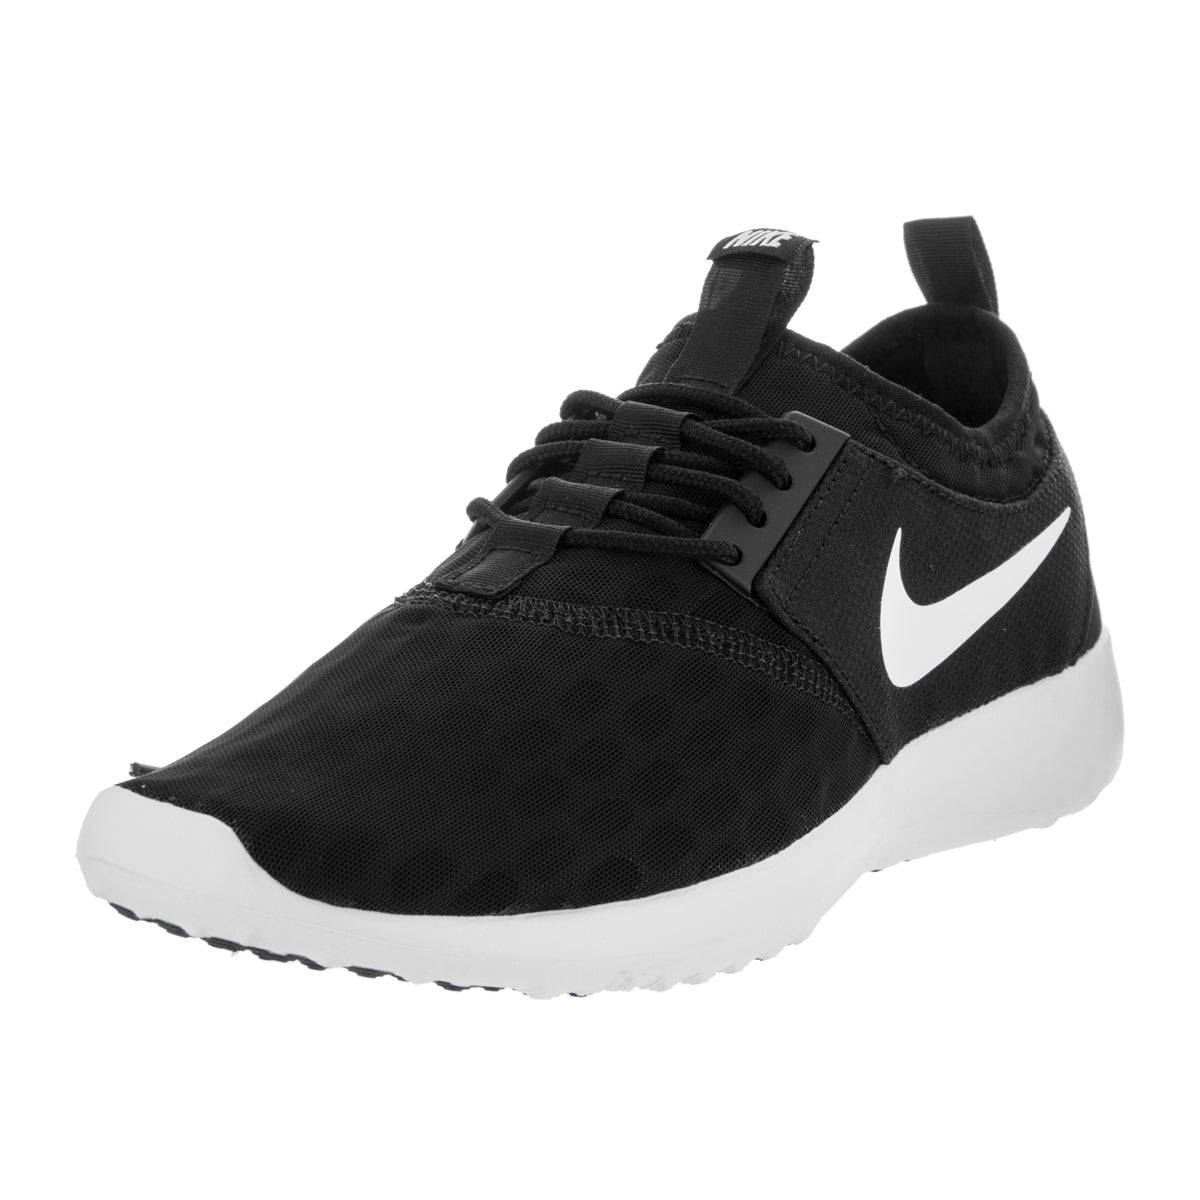 Nike Women's Juvenate Skate Shoe (8), Black (leather)